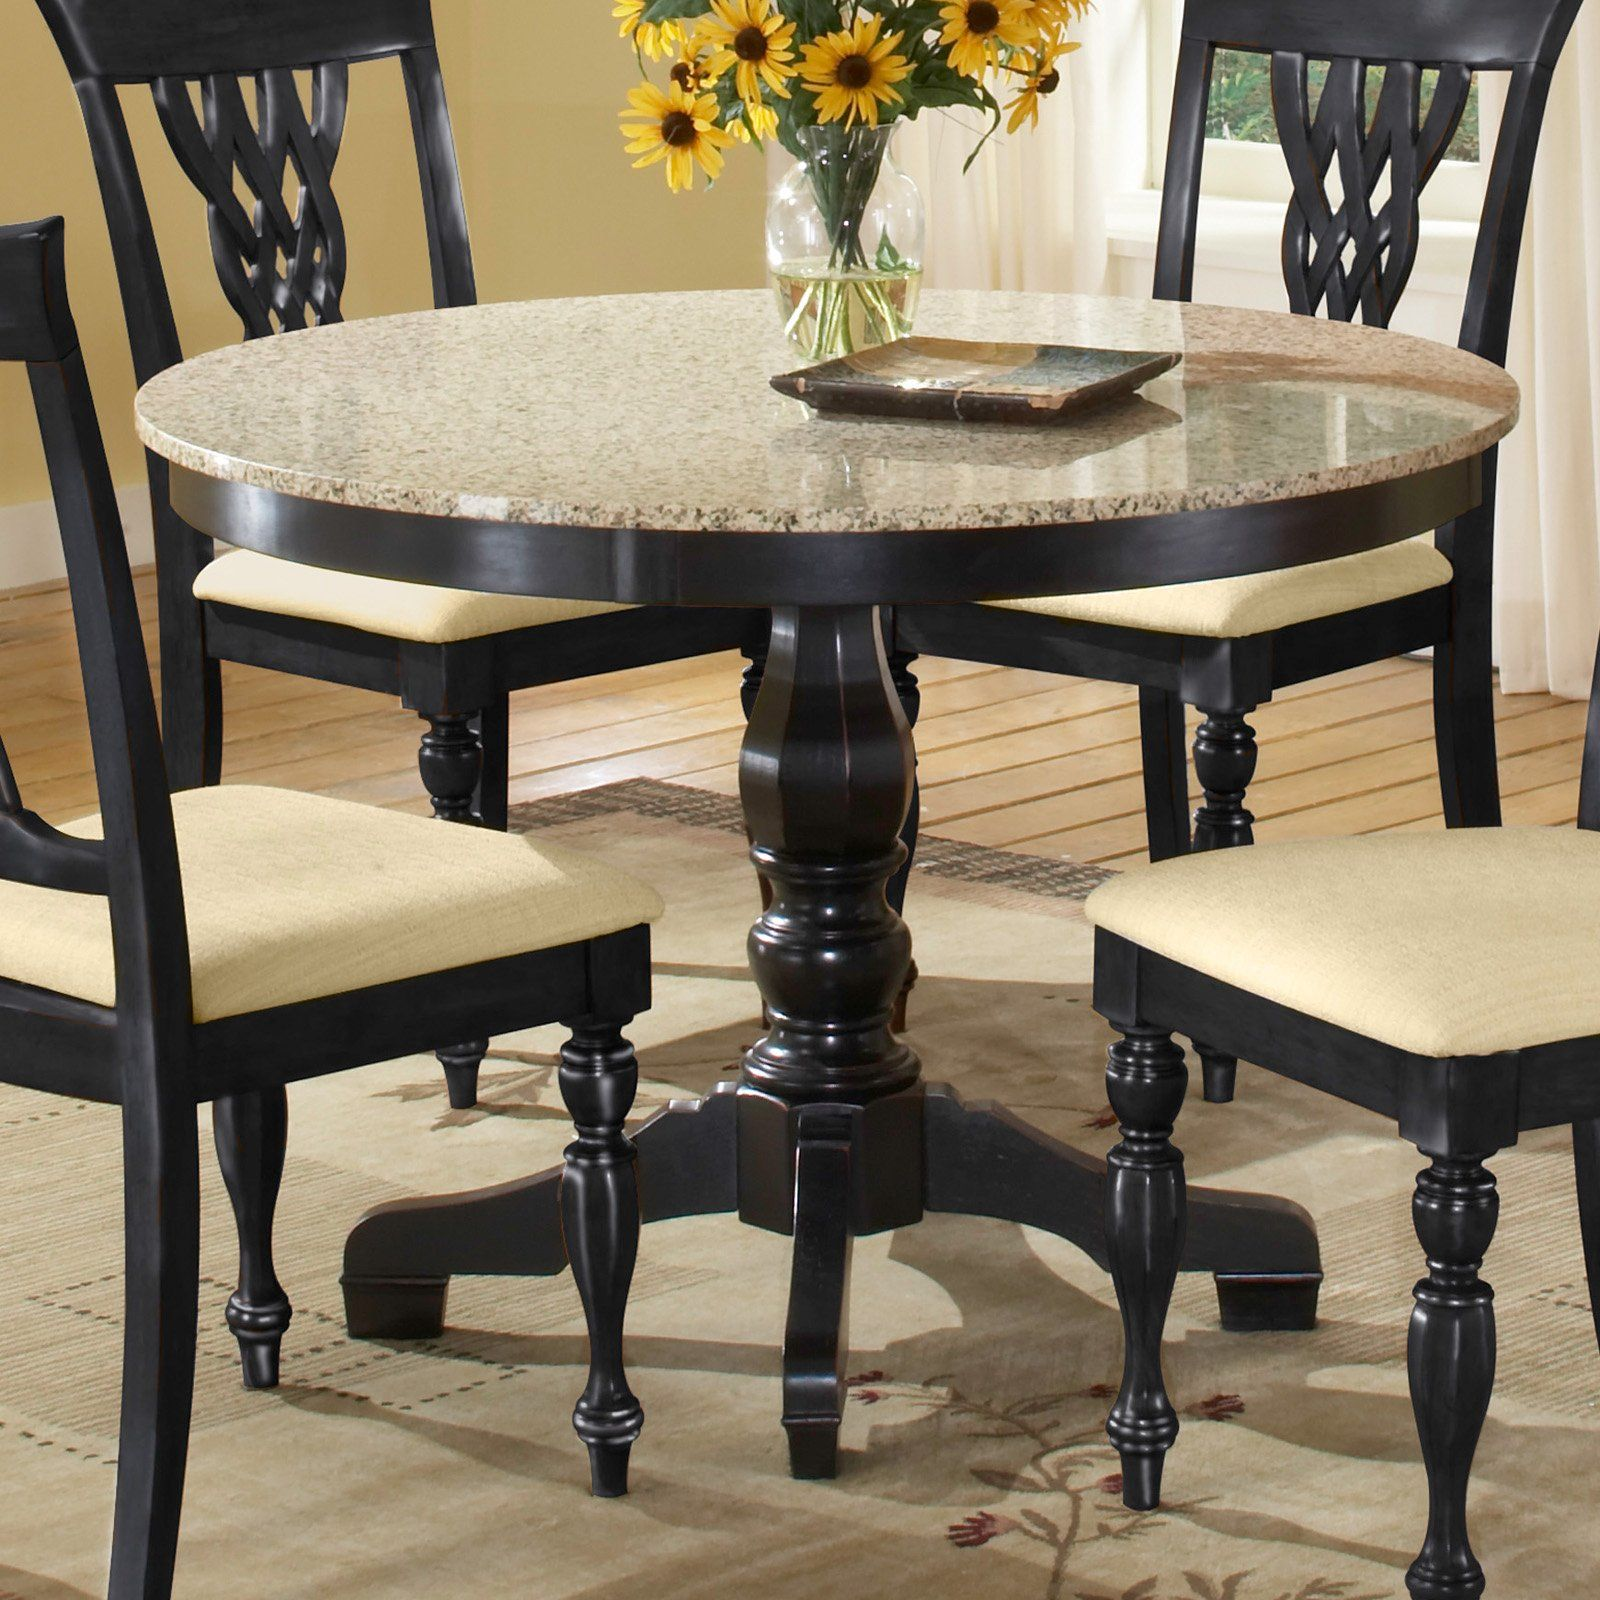 Have To Have It Embassy Round Pedestal Table With 42 Inch Granite Top Black Hayneedle Granite Dining Table Dining Table Marble Round Marble Dining Table